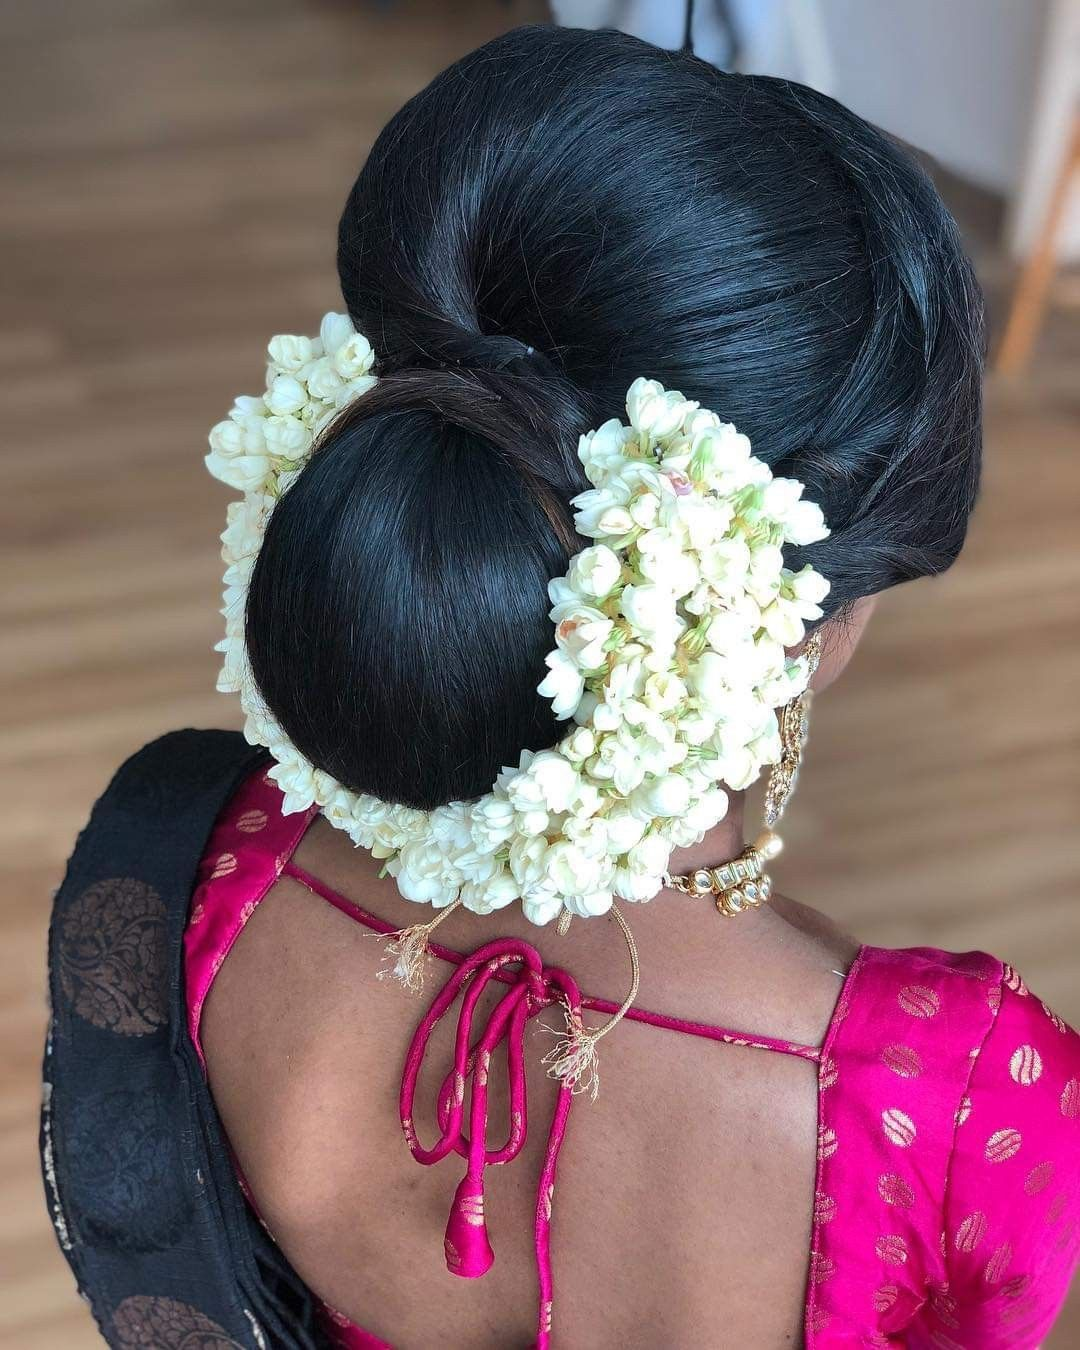 idea by krishnan iyer on long hair | bun hairstyles for long